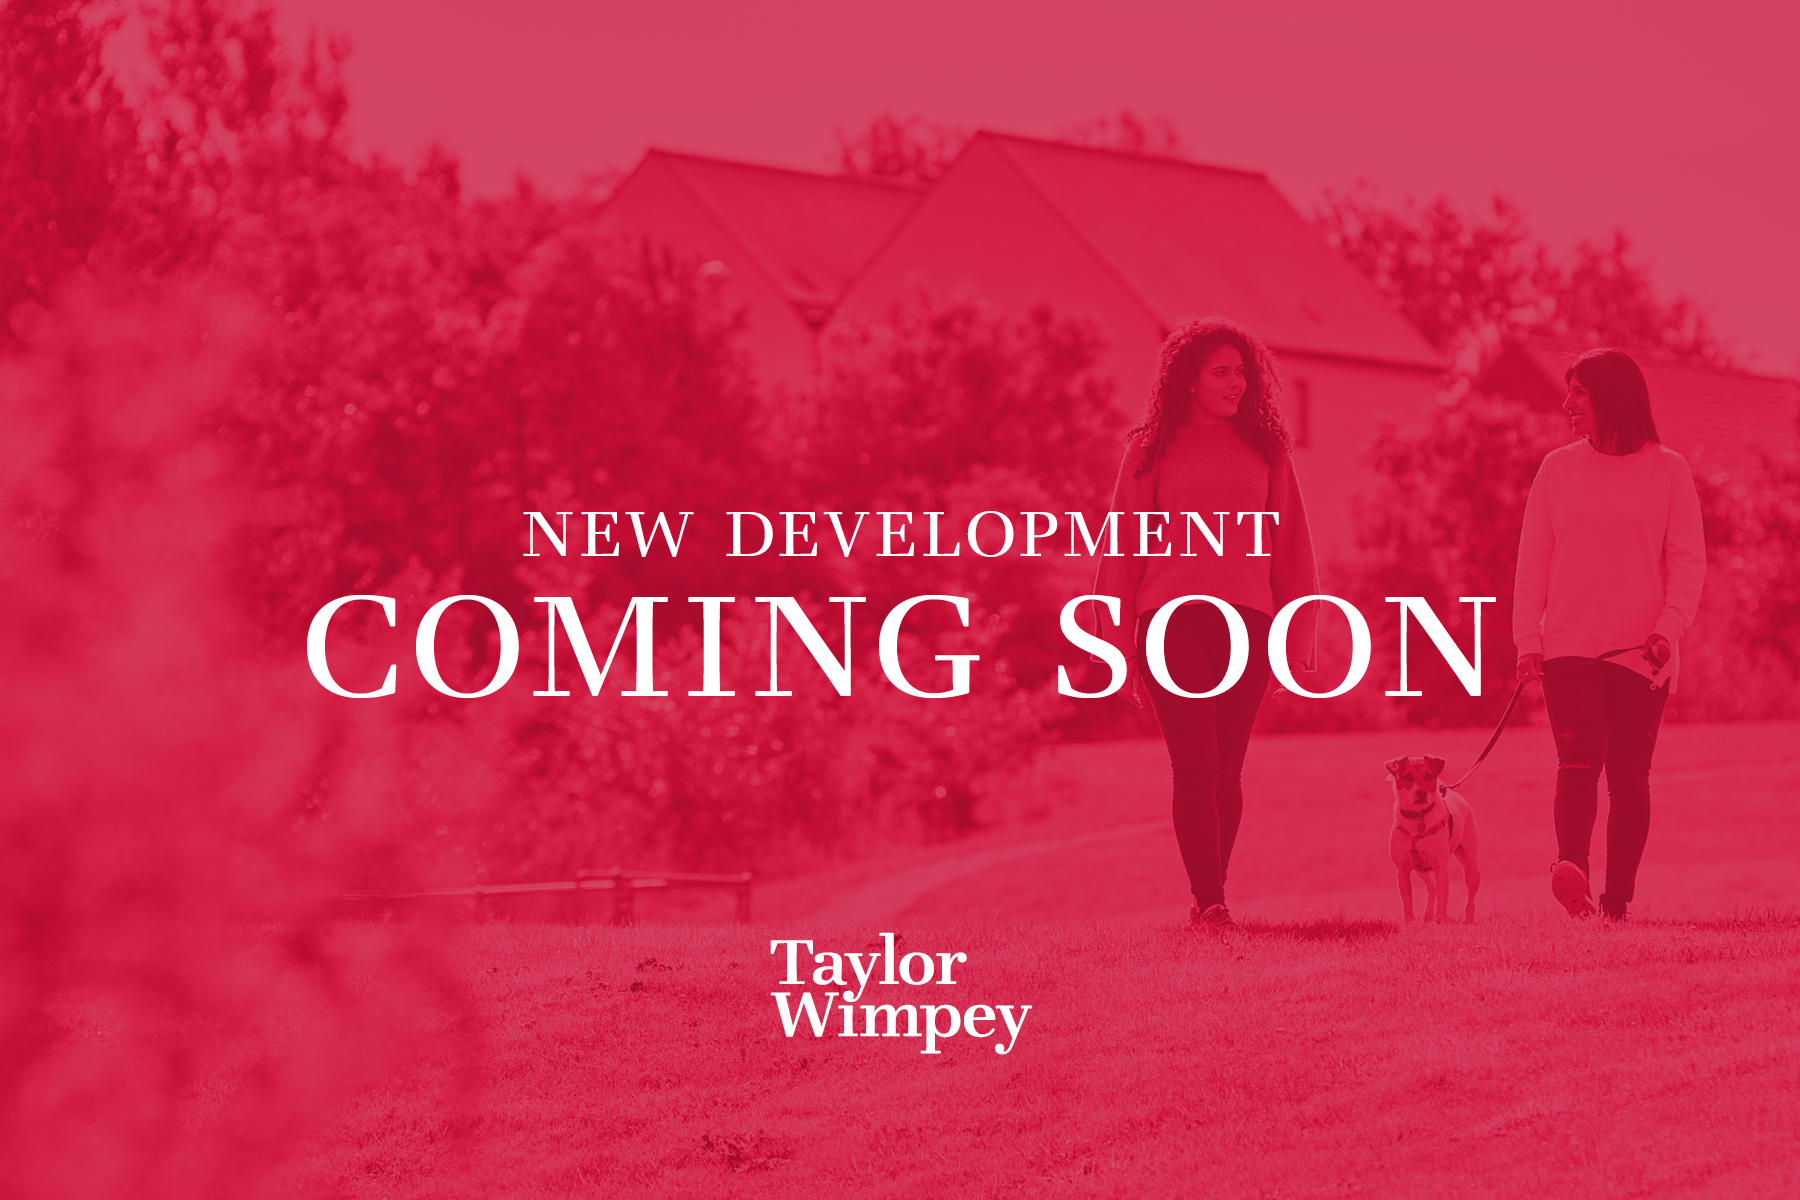 57908_TWNY - Coming soon-Web Carousel 1800x1200 slide1 (2)